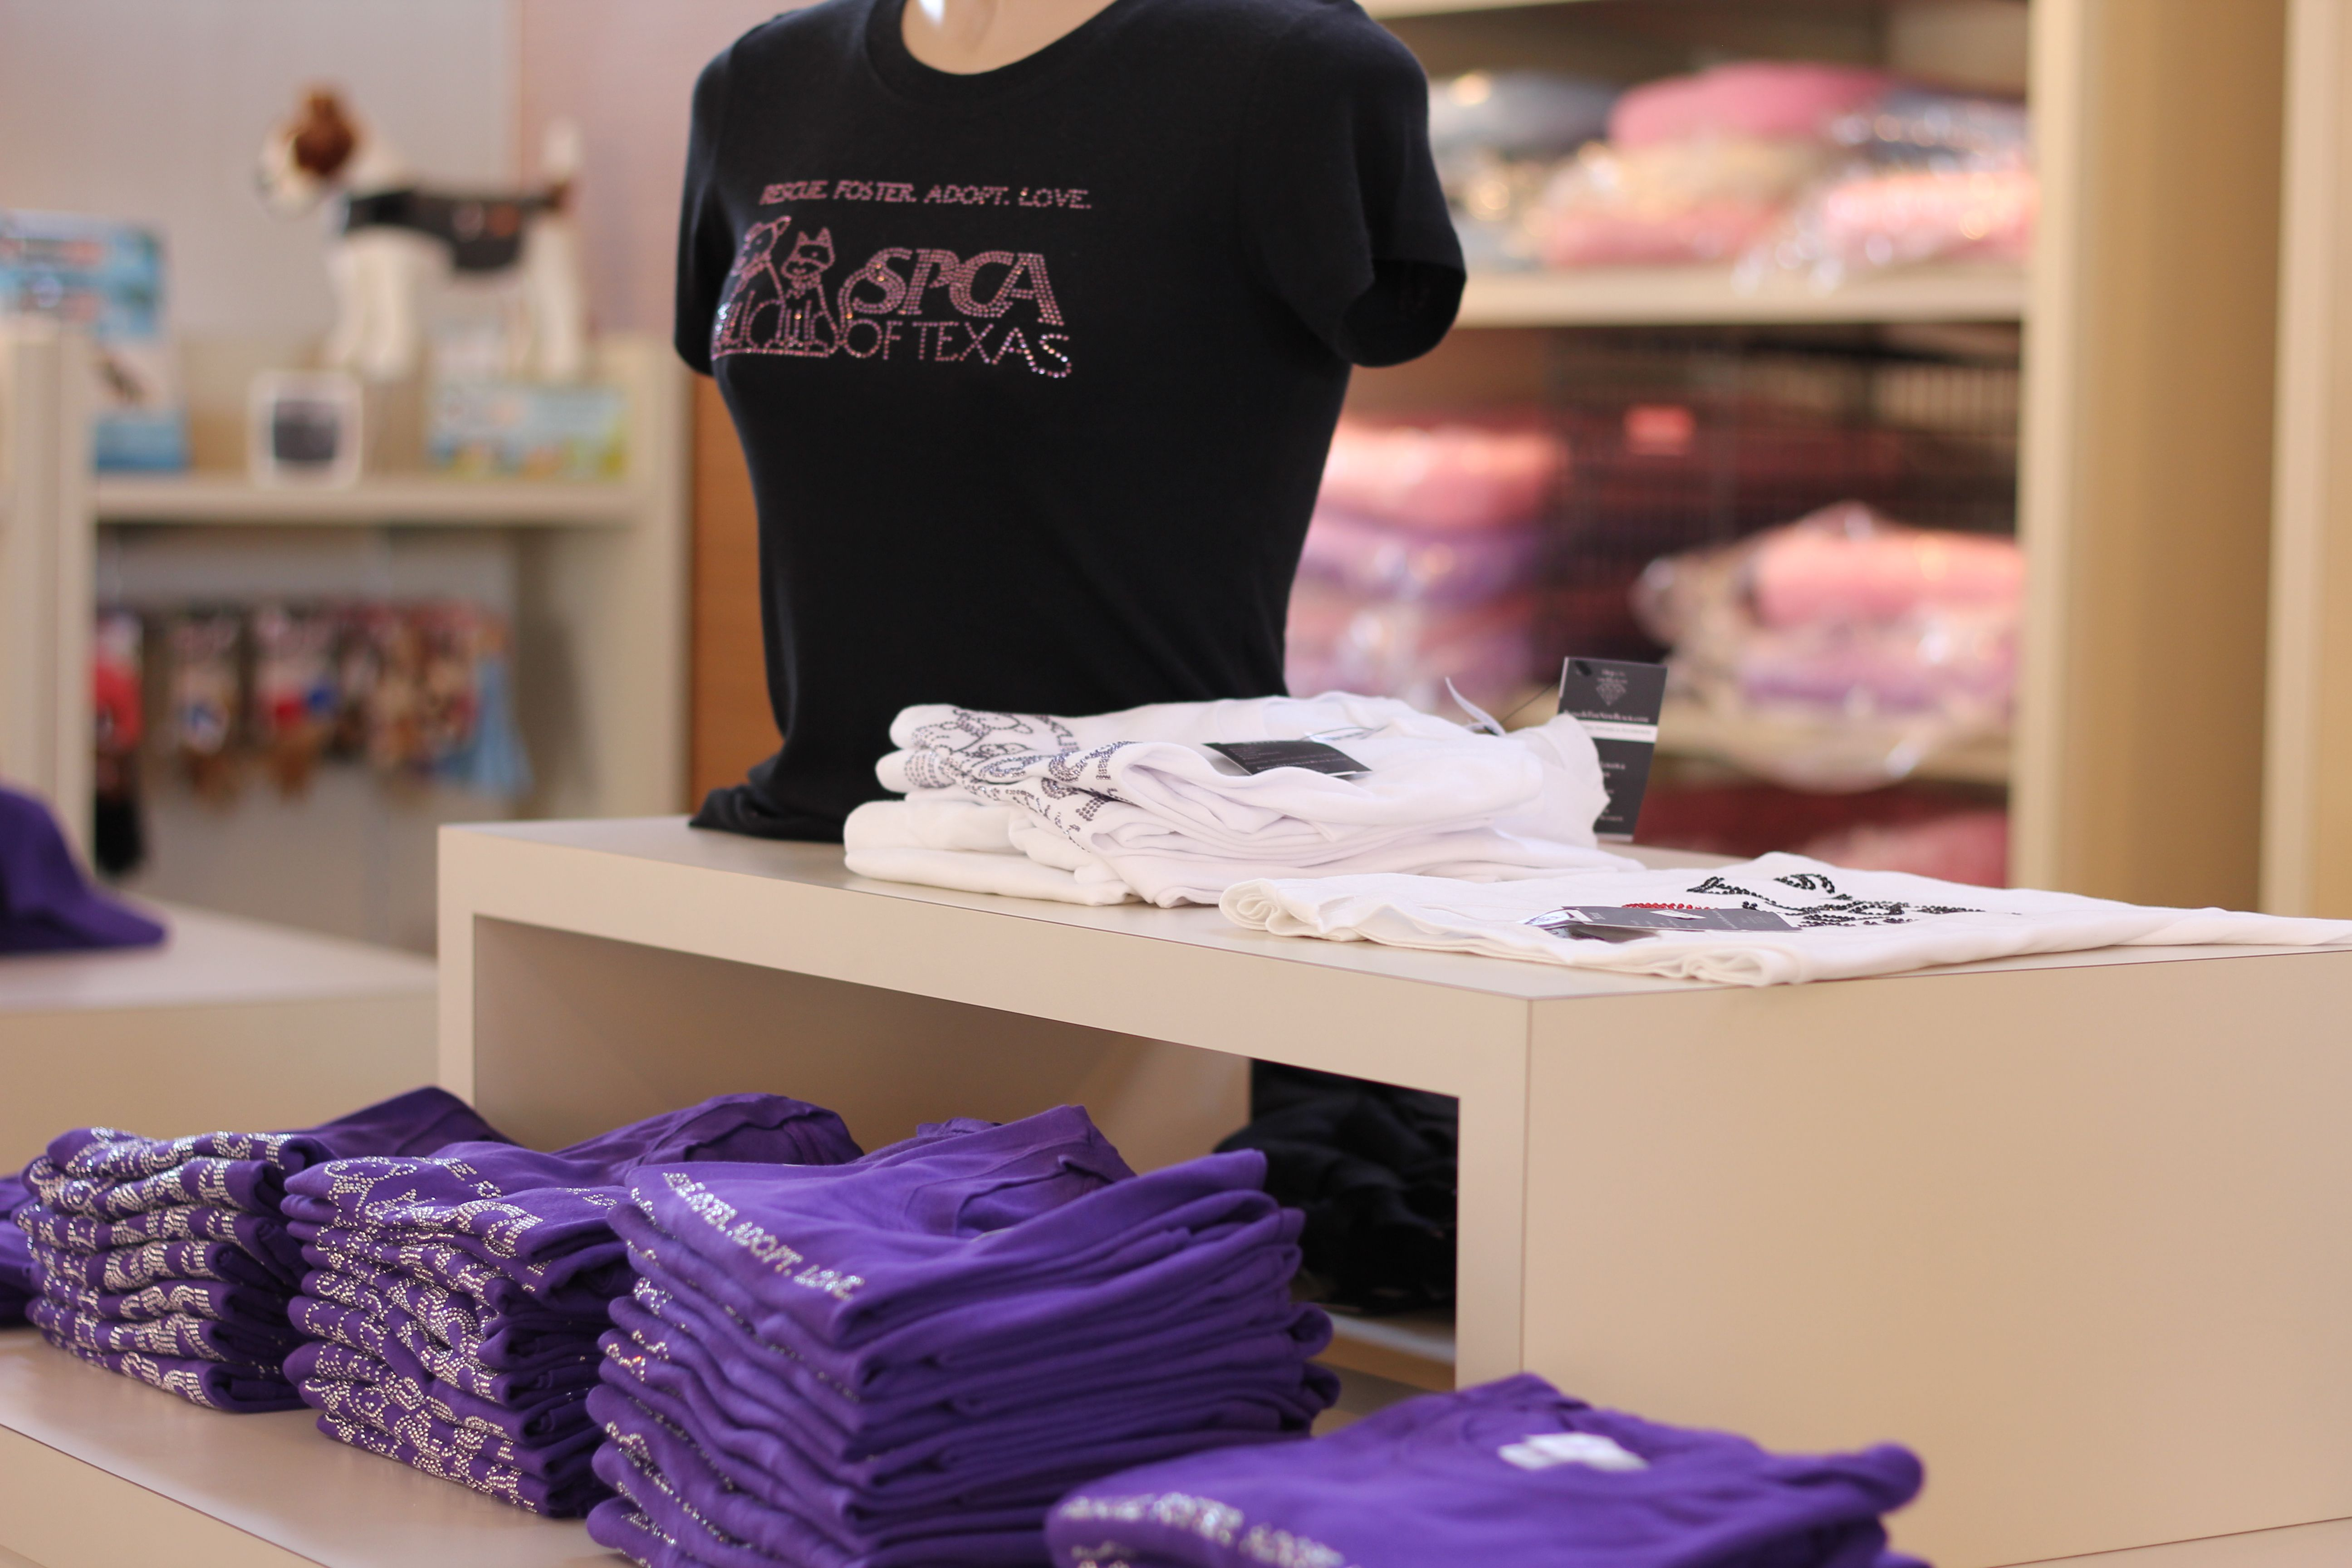 Bedazzled Spca Of Texas Shirts Can Be Purchased At The Spca Of Texas Inside The Jan Rees Jones Animal Care Center In Dallas Spca Texas Shirts Pet Care